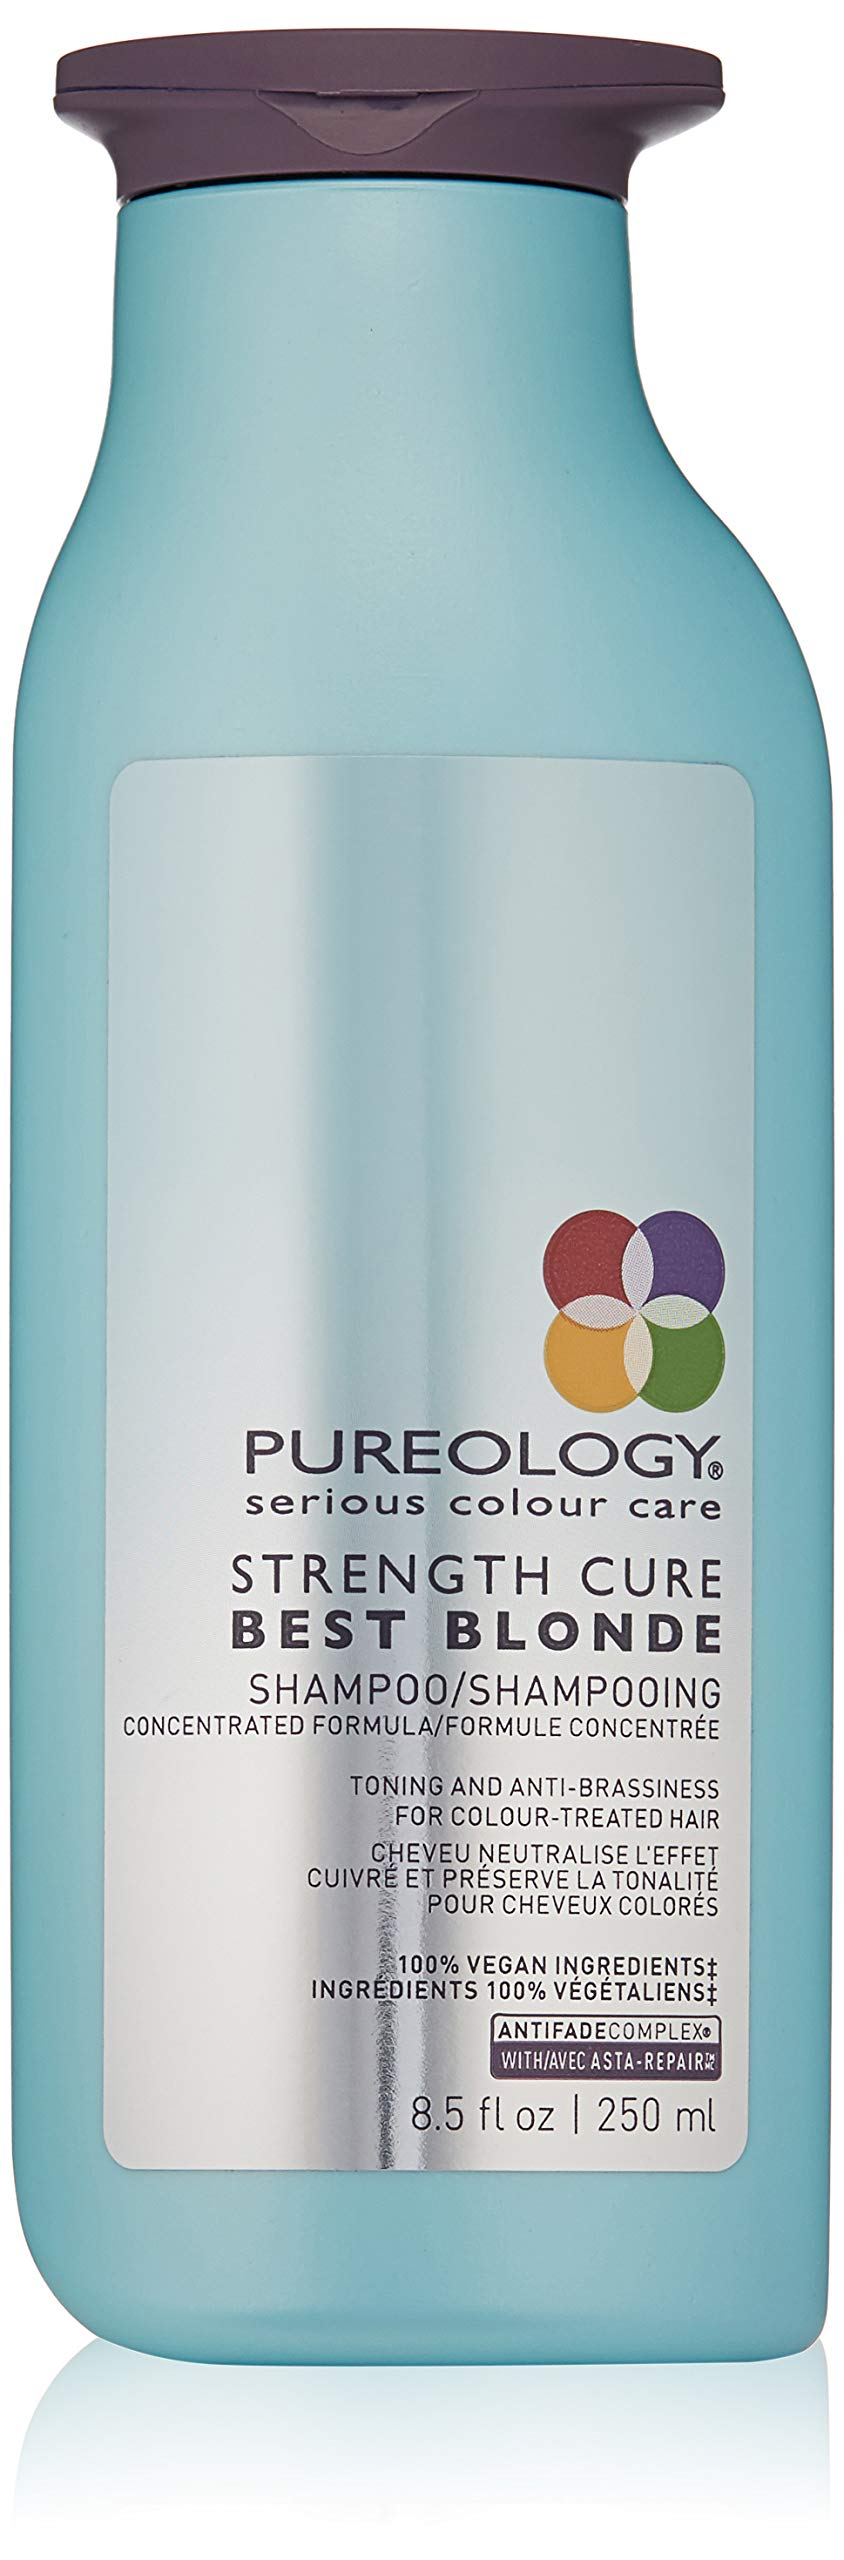 Pureology Strength Cure Best Blonde Purple Shampoo, 8.5 Fl Oz by Pureology